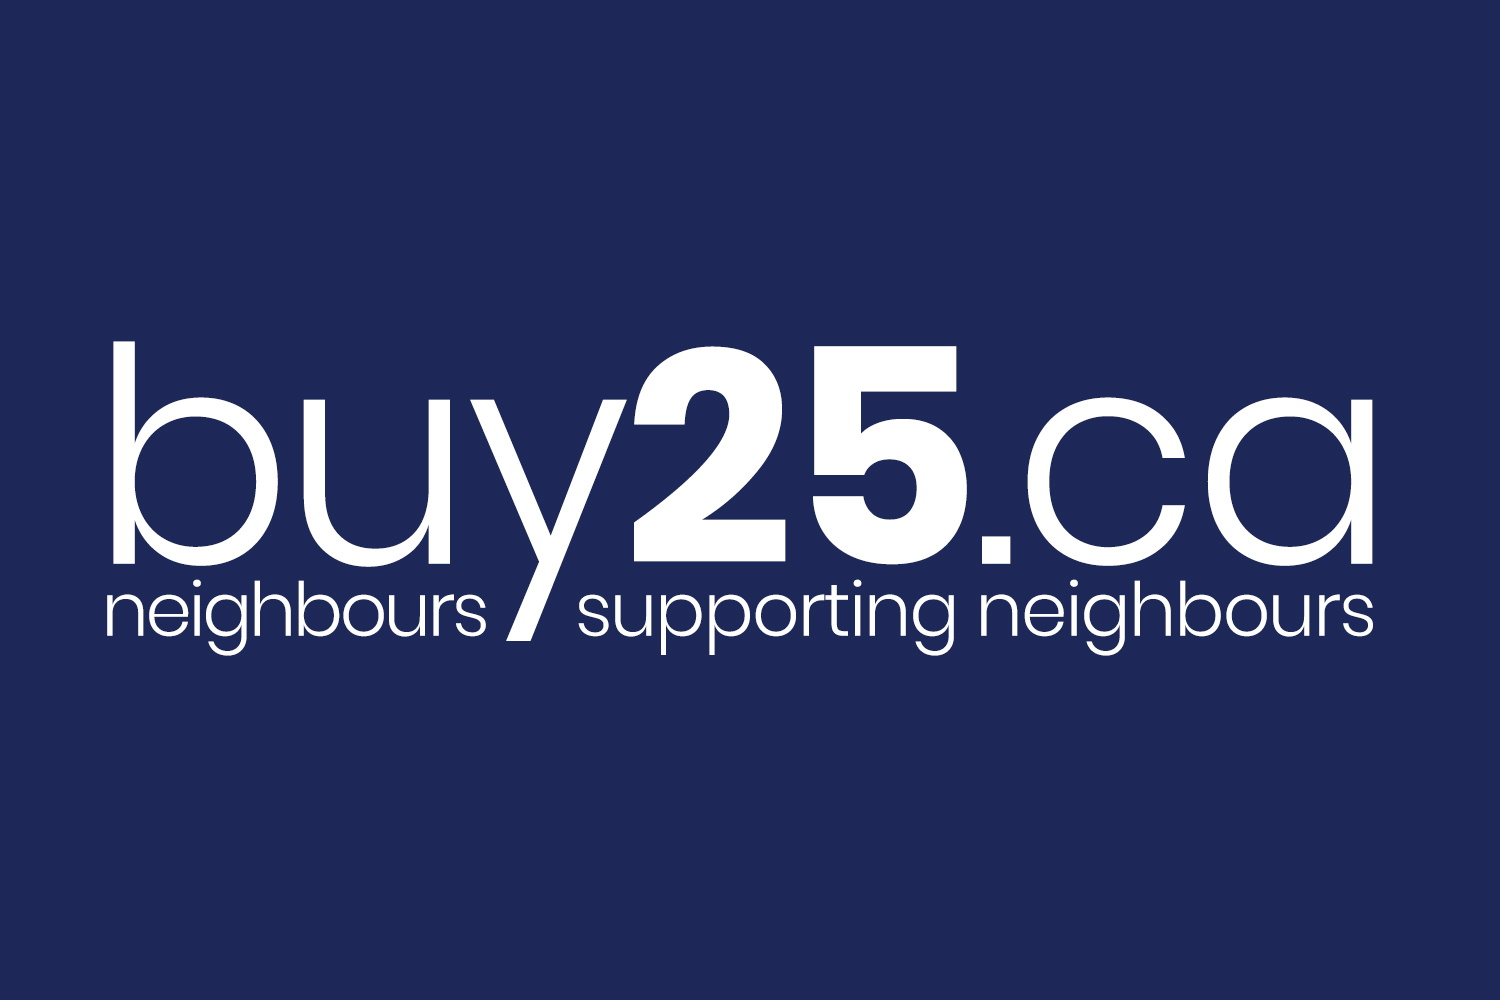 I feel that the City could do more to help Ward 25 businesses thrive so I created a directory called buy25.ca where people will be able to find local restaurants, shopping, trades people, entertainment etc. If you have a business in this Ward please reach out to be added. If elected, I'll do all I can […]